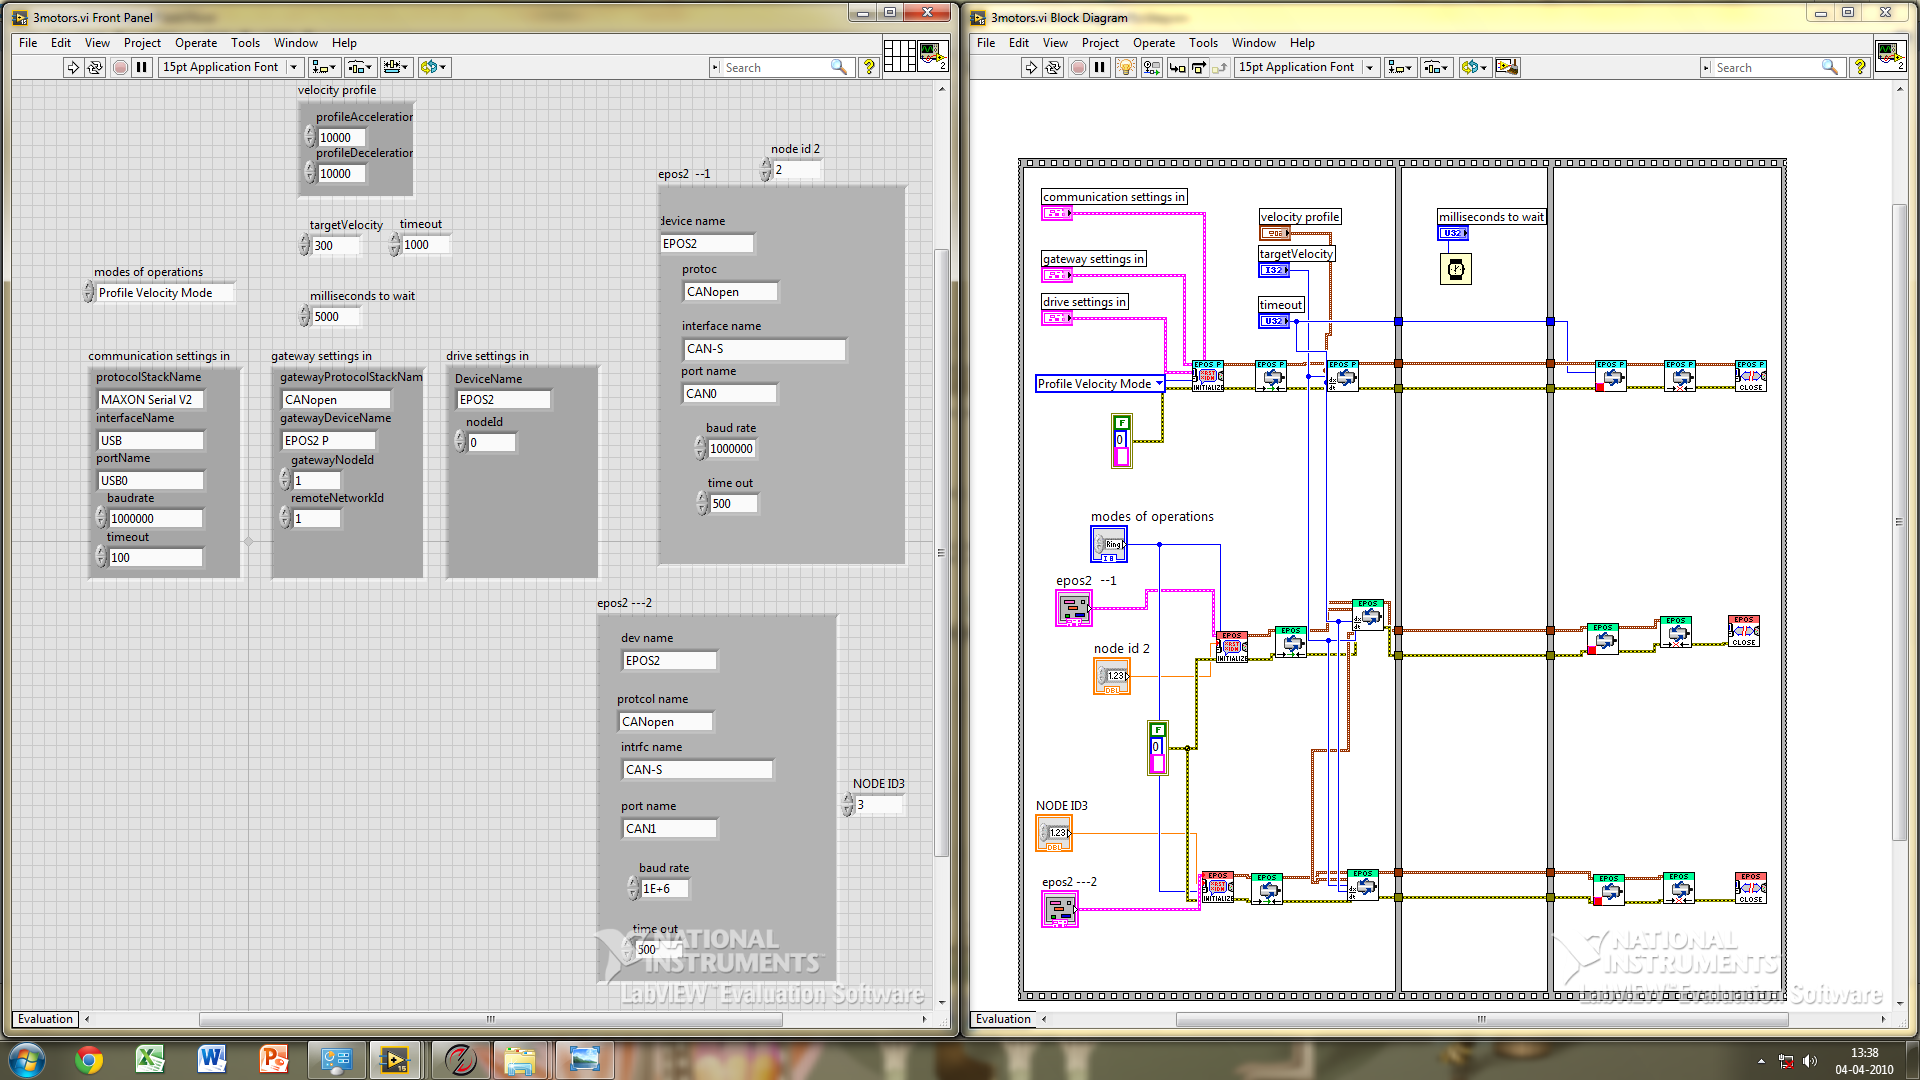 epos2 p 24 5 connected using can s to epos2 24 2 discussion forums rh forums ni com labview for engineers solution manual labview 2009 solutions manual